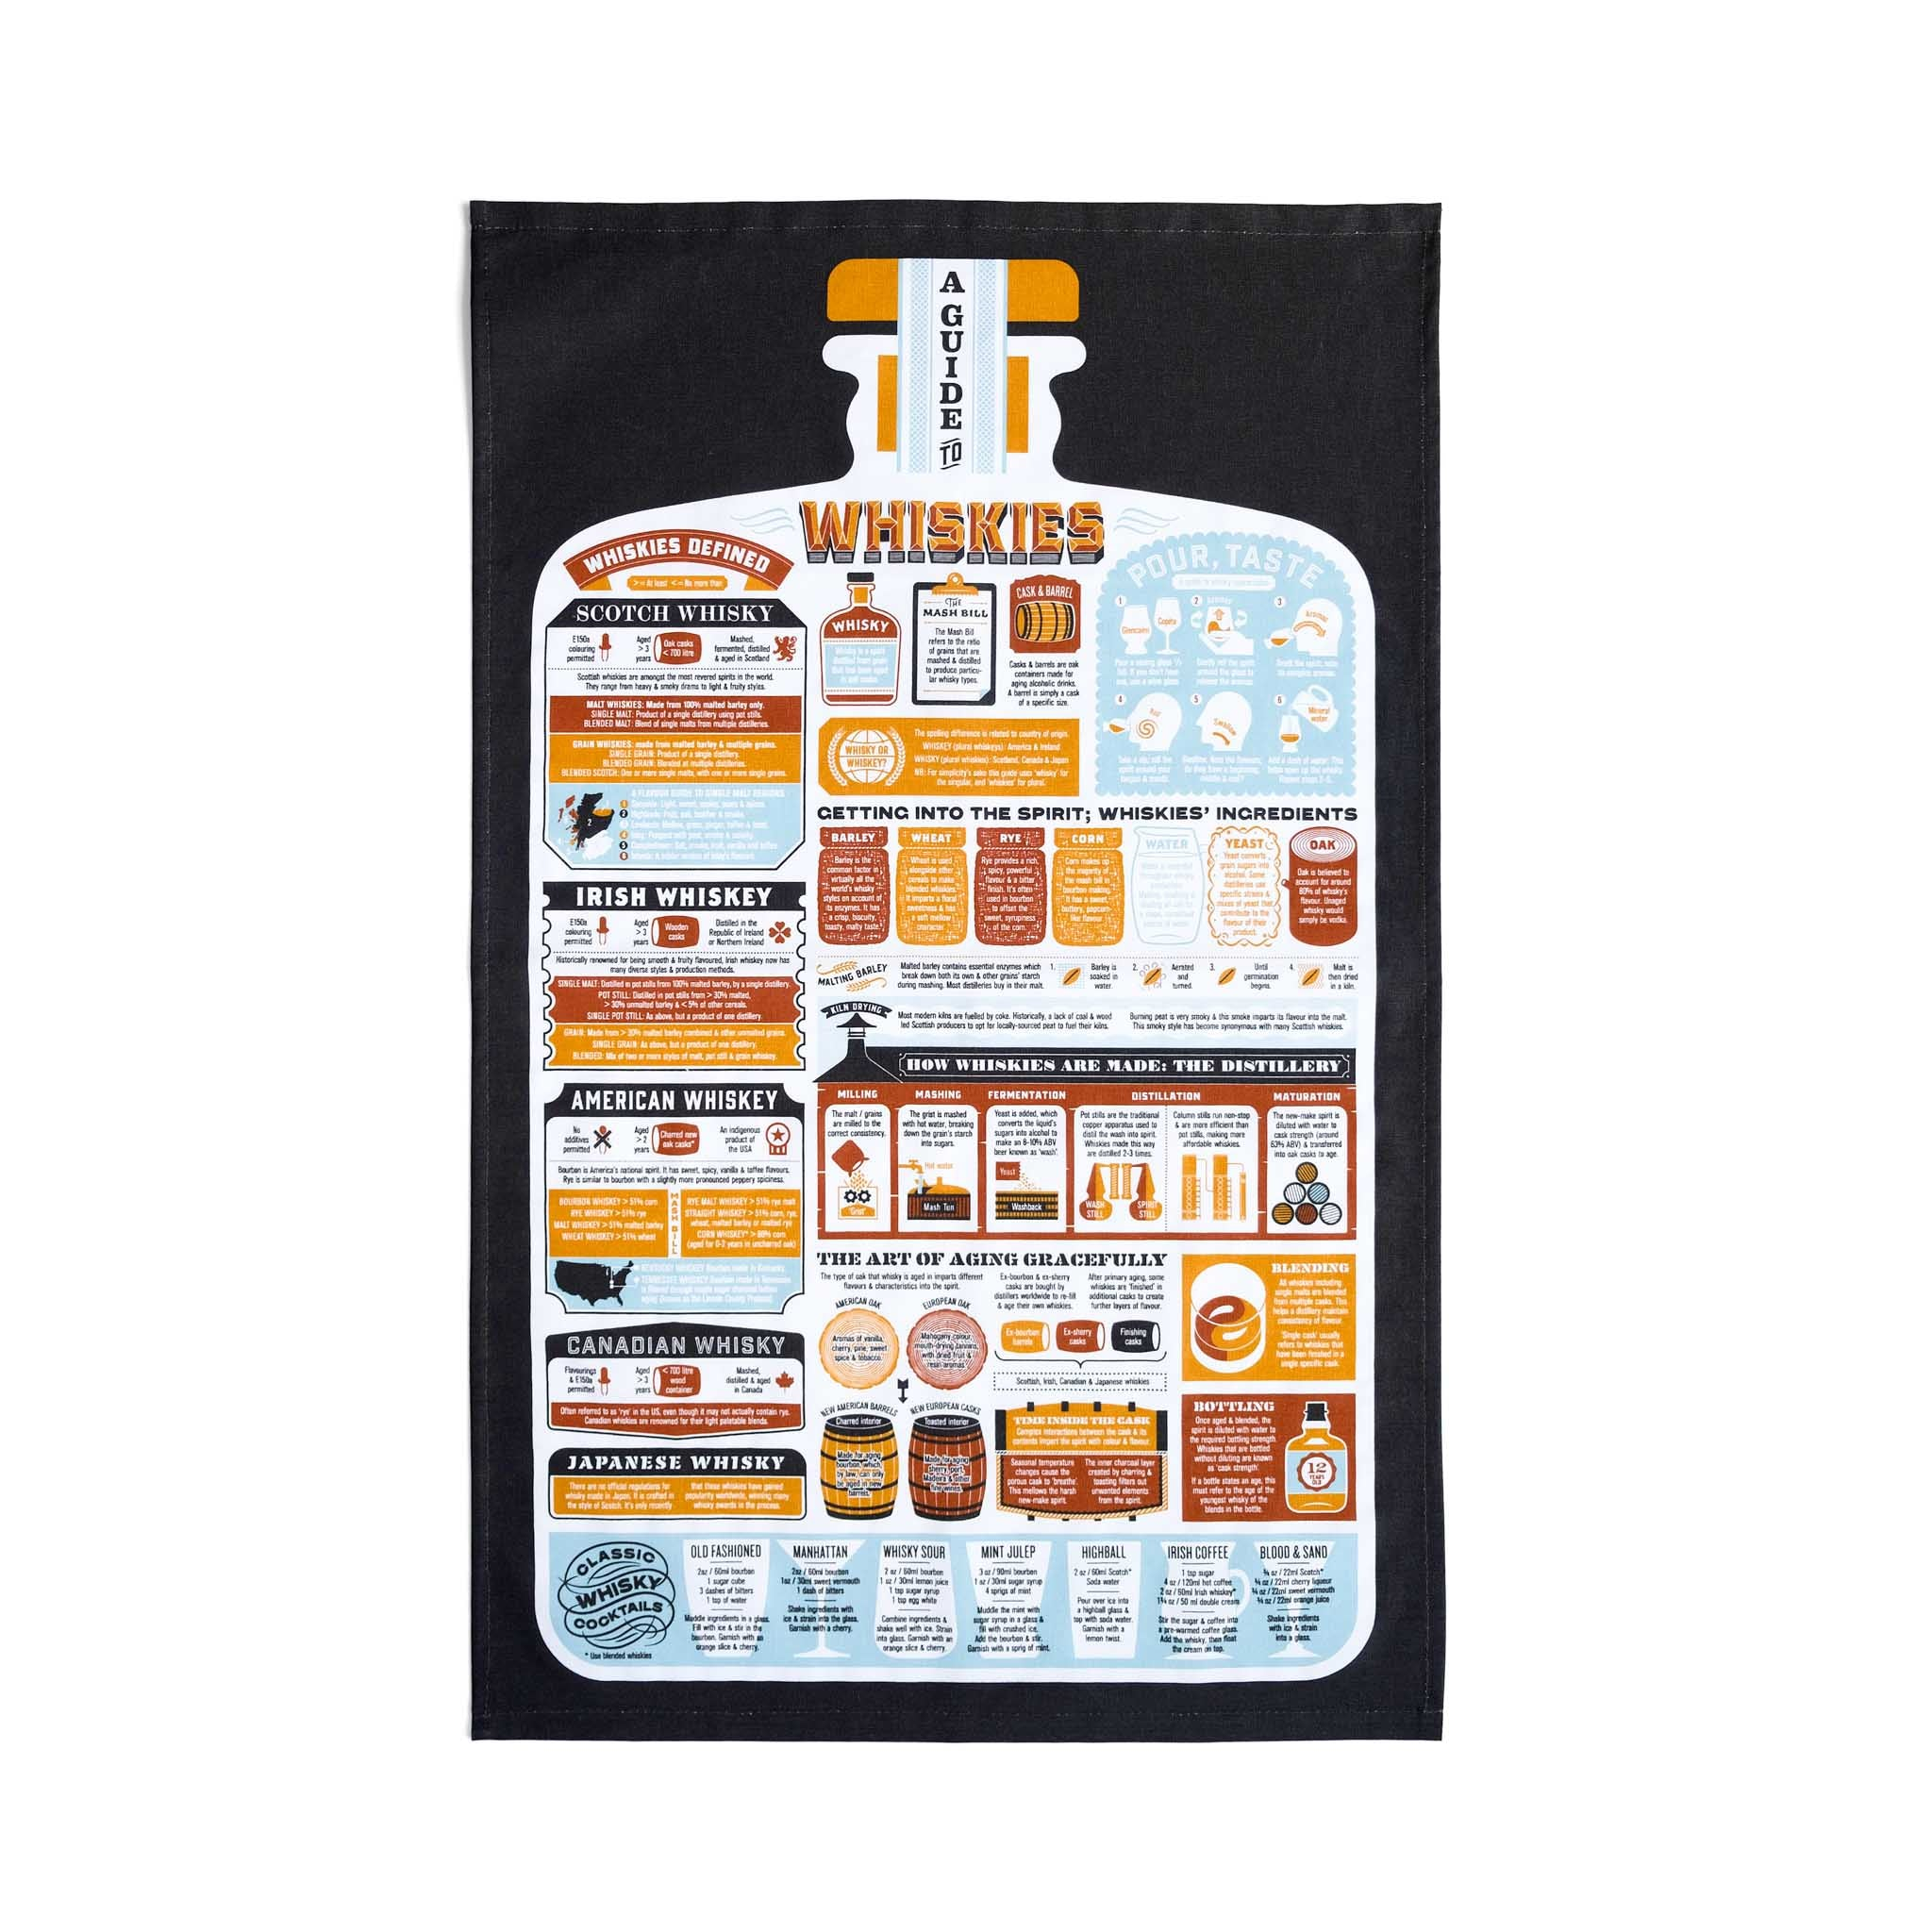 Stuart Gardiner Guide to Whiskies Tea Towel